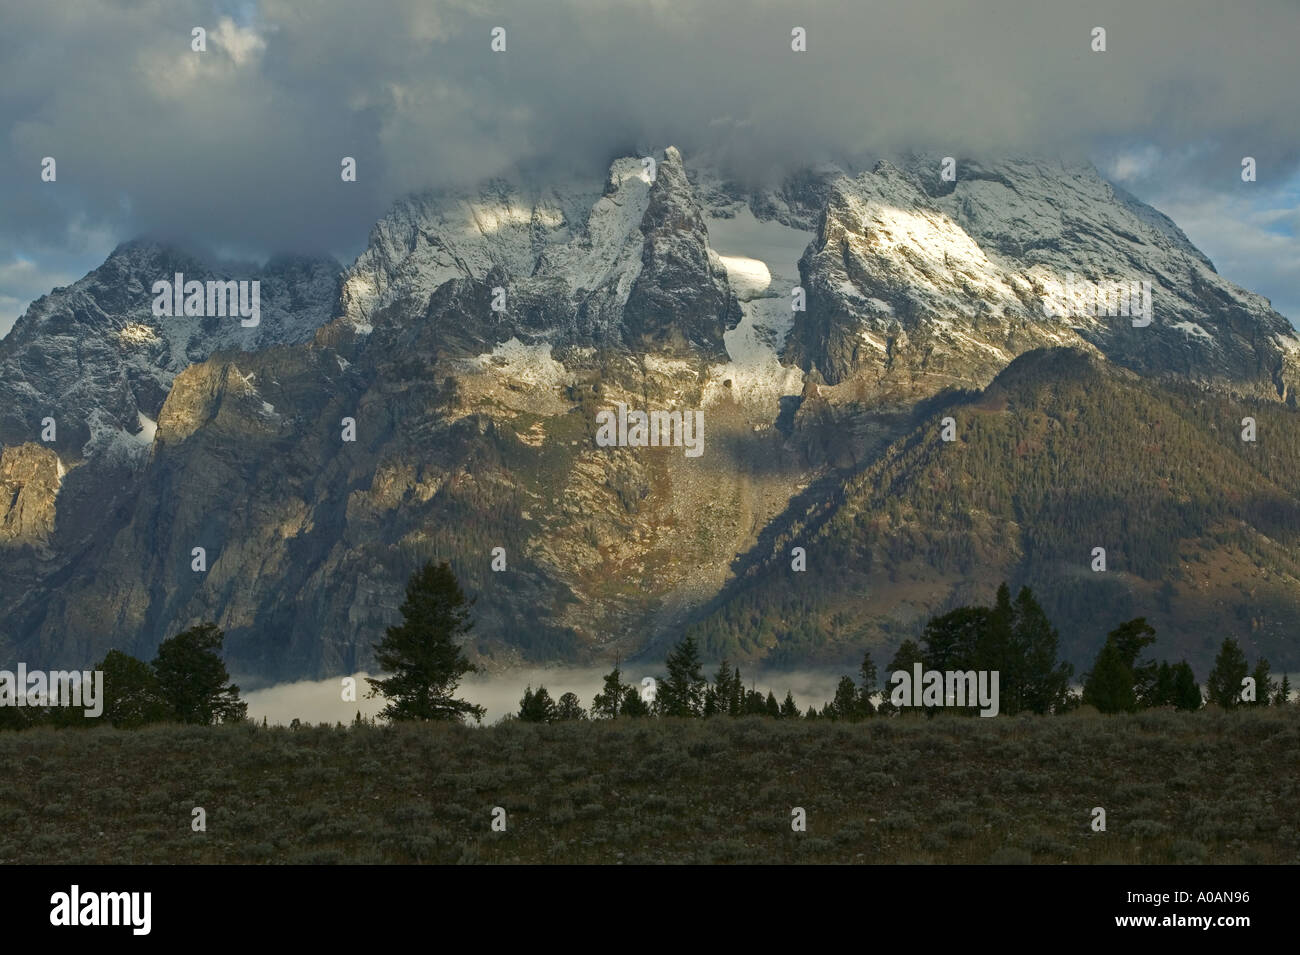 Close up of one the peaks in Grand Teton National Park Wyoming - Stock Image